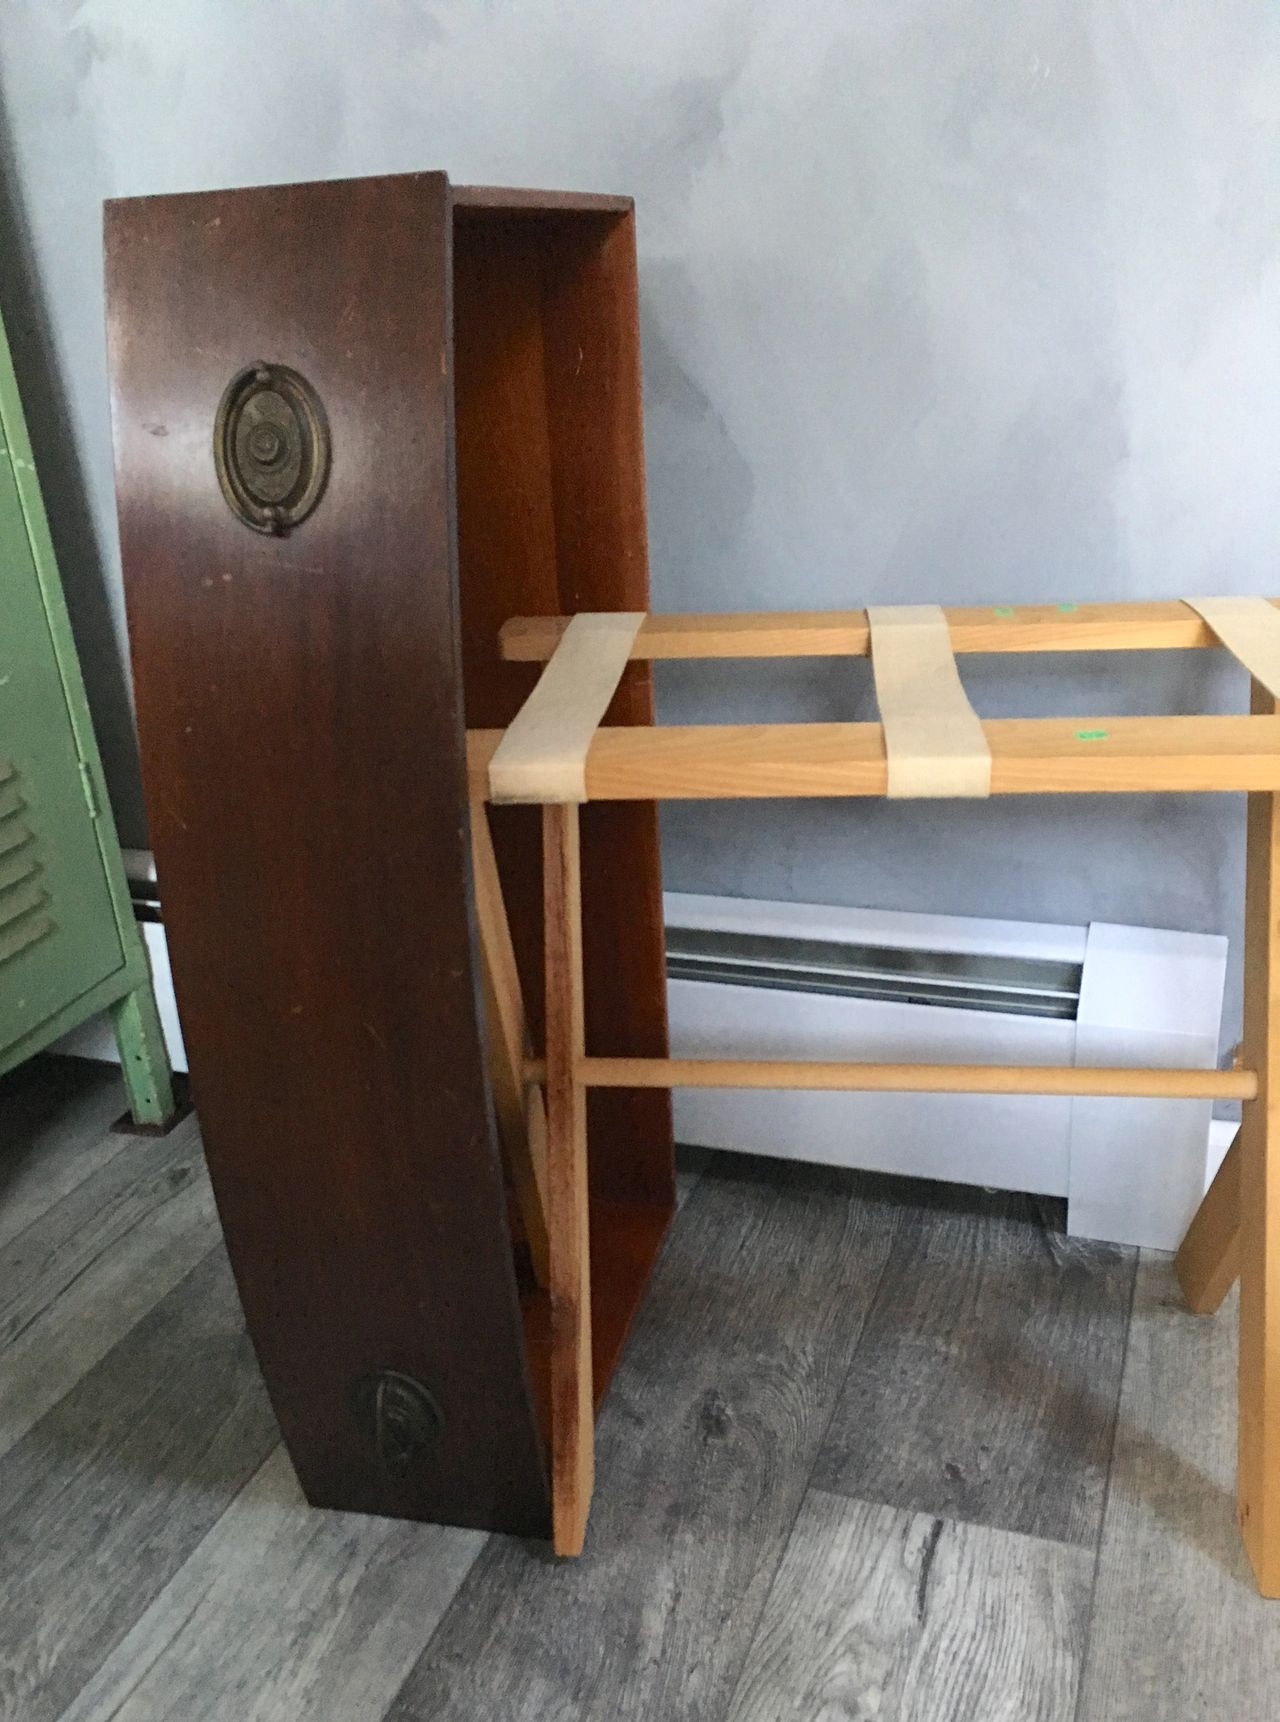 raw materials of an old drawer and luggage rack